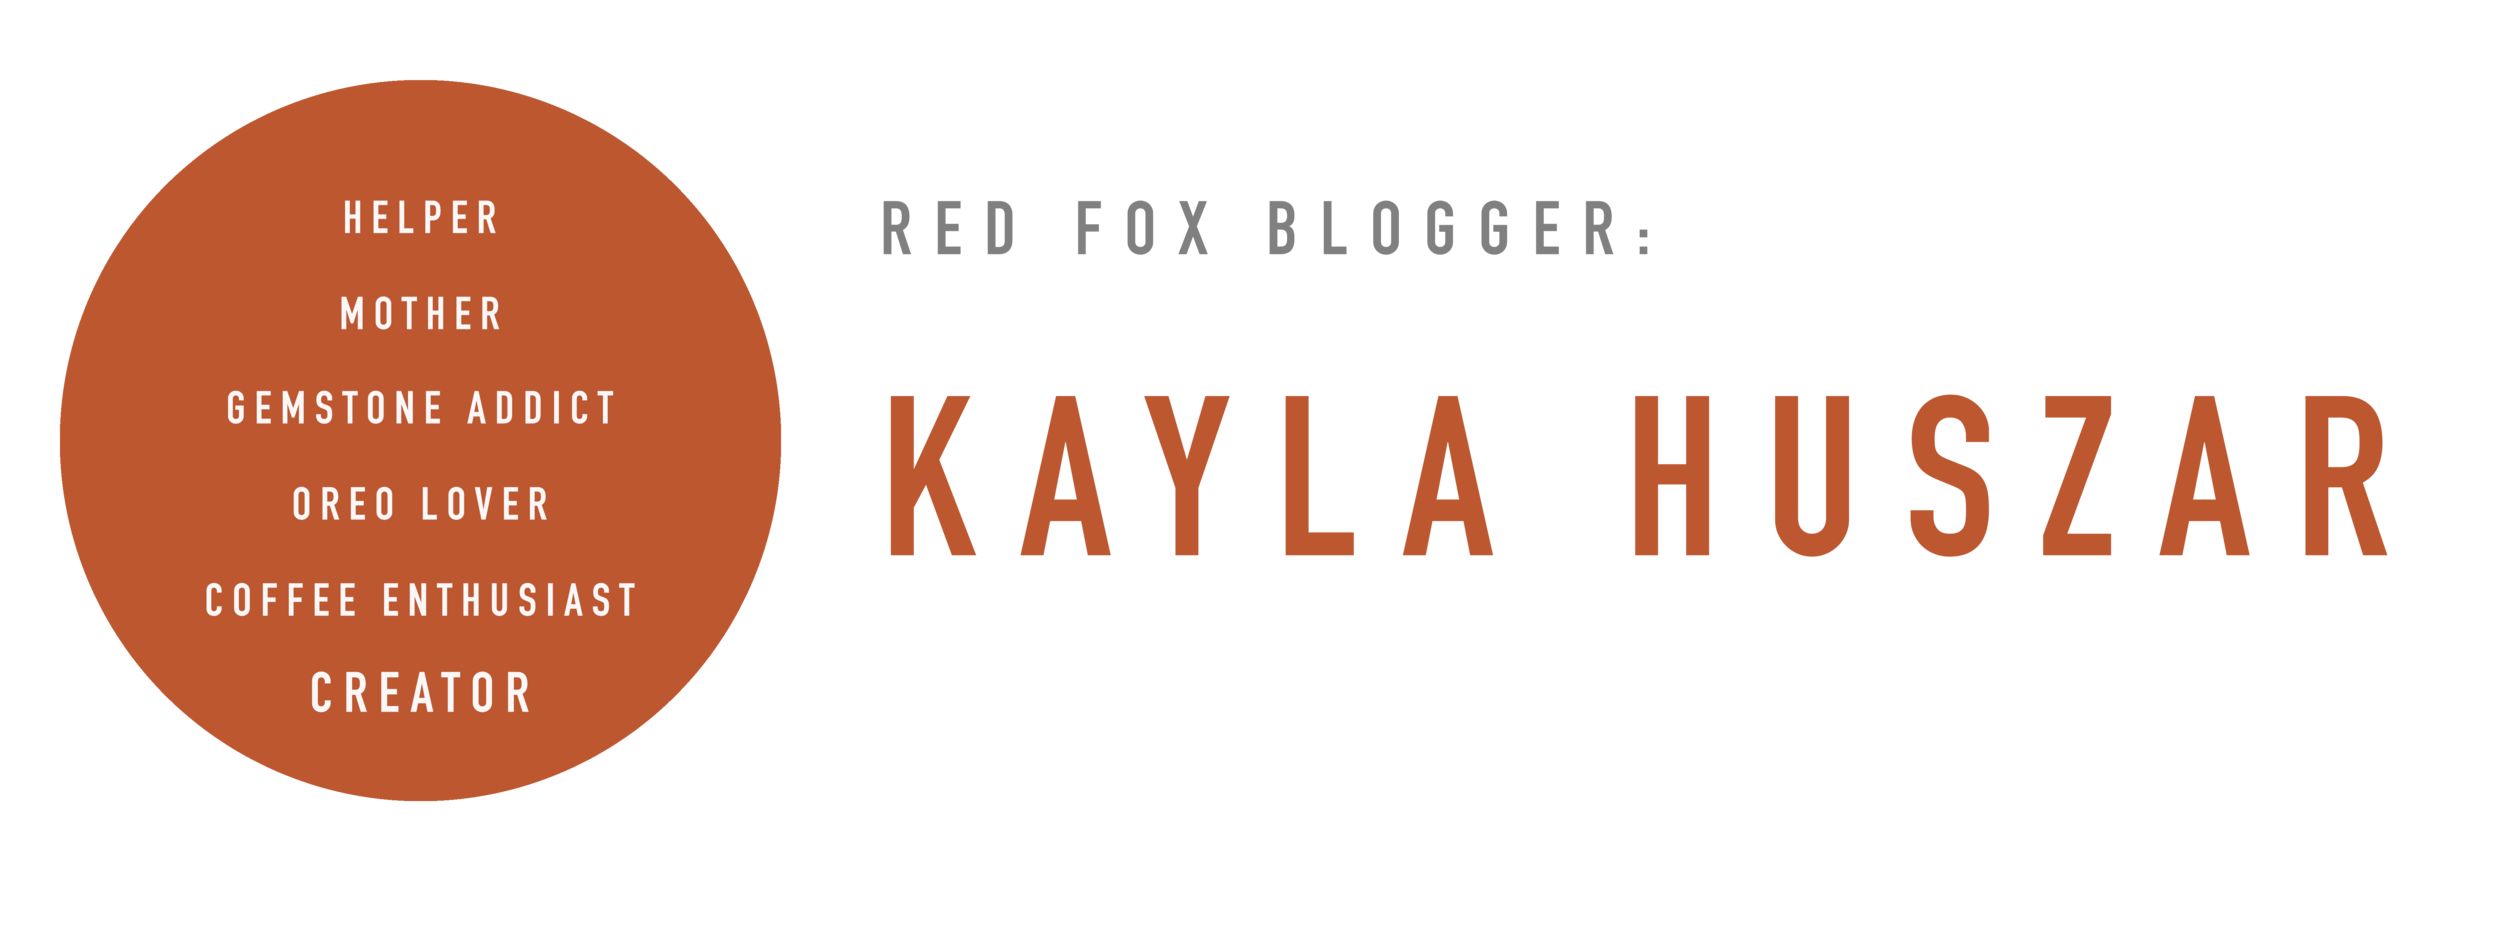 Red-Fox-Blogger-Kayla-Huszar